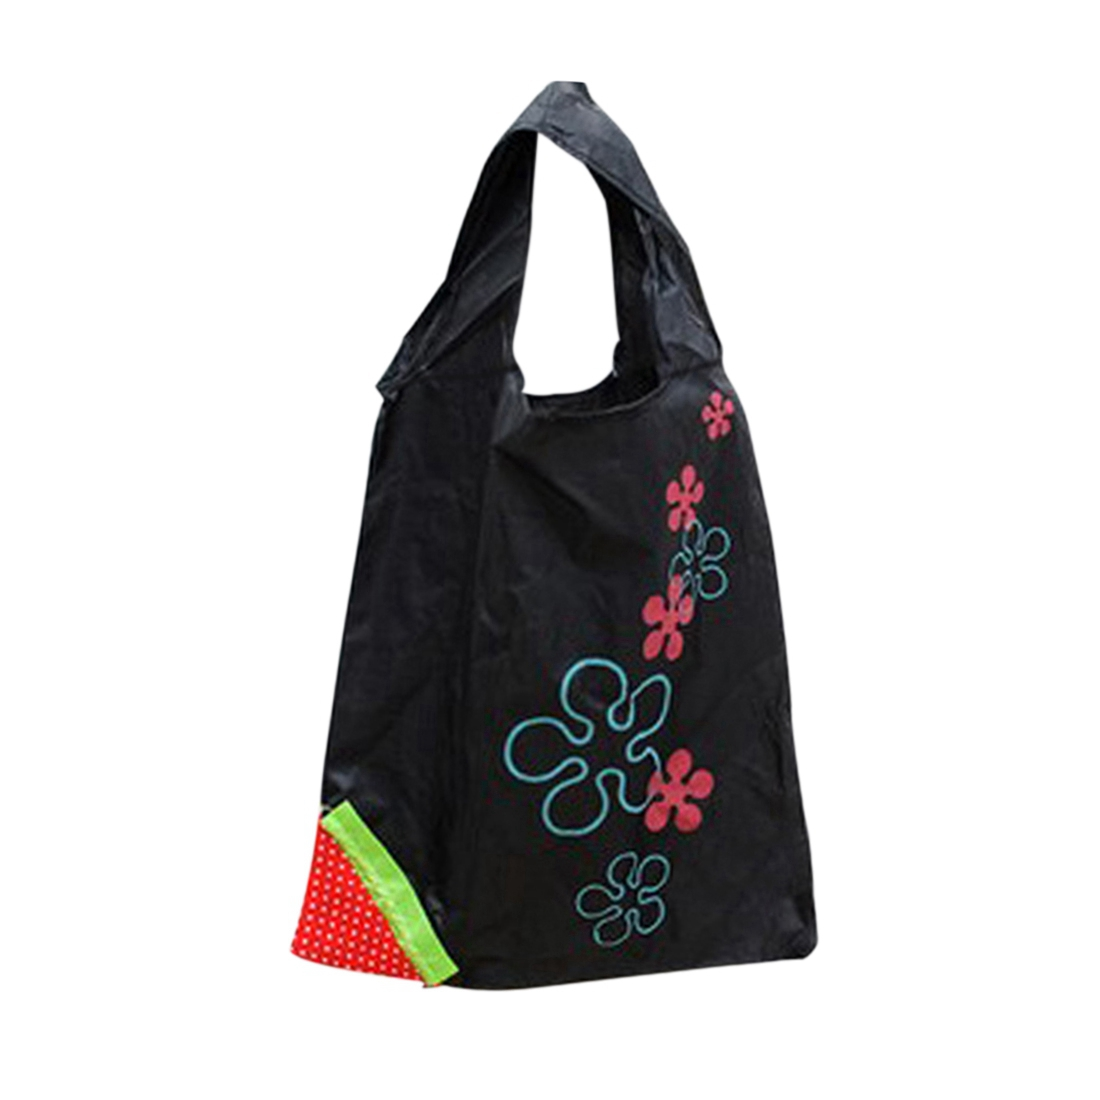 Free Shipping!!! 1 X Eco-friendly Storage Handbags Strawberry Foldable Carrier Shopping Bag Tote Reusable Shopping Bag<br><br>Aliexpress